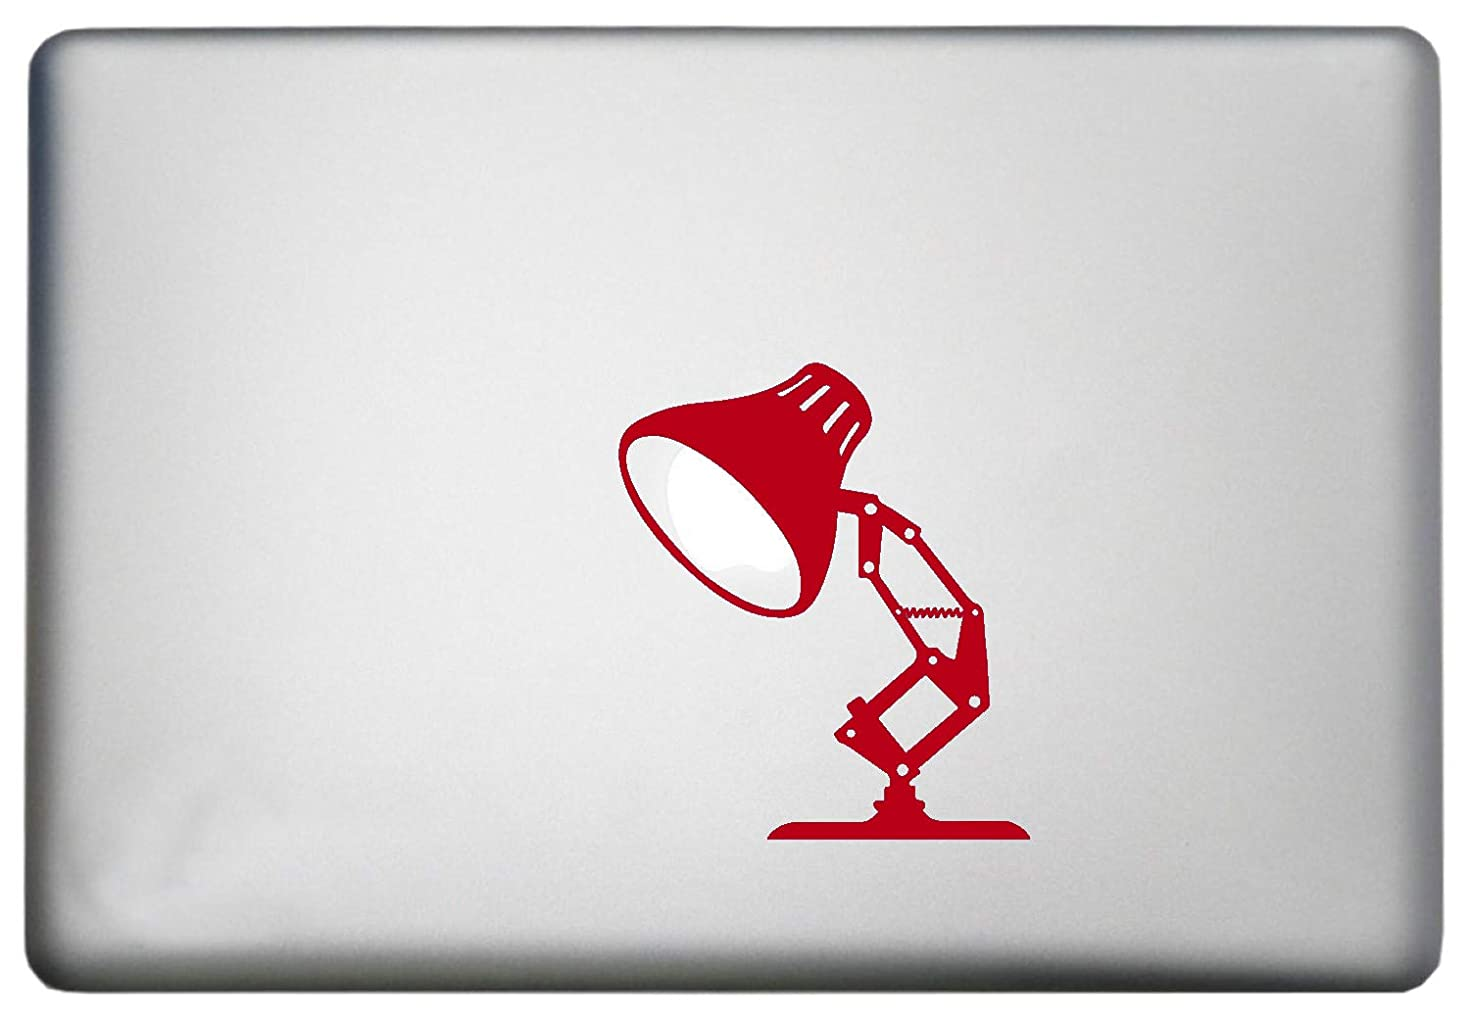 Disney Pixar Lamp MacBook Pro Decal is a Disney Lamp Decal. Available in 11, 12, 13 and 15 inch Laptop Sizes. Looks Great with Your Pixar Lamp Theme RED